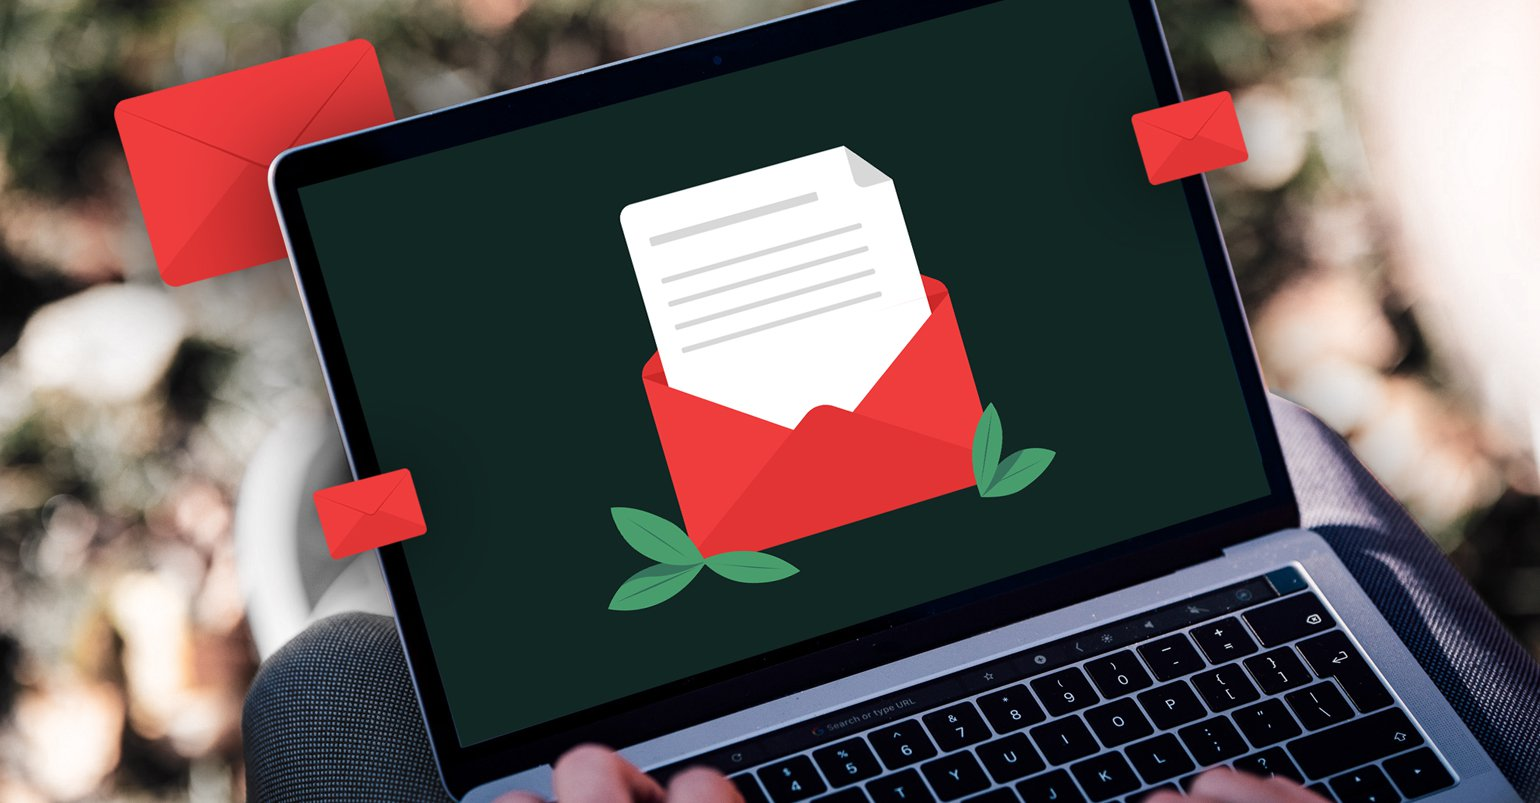 Your merriest guide to Christmas email marketing